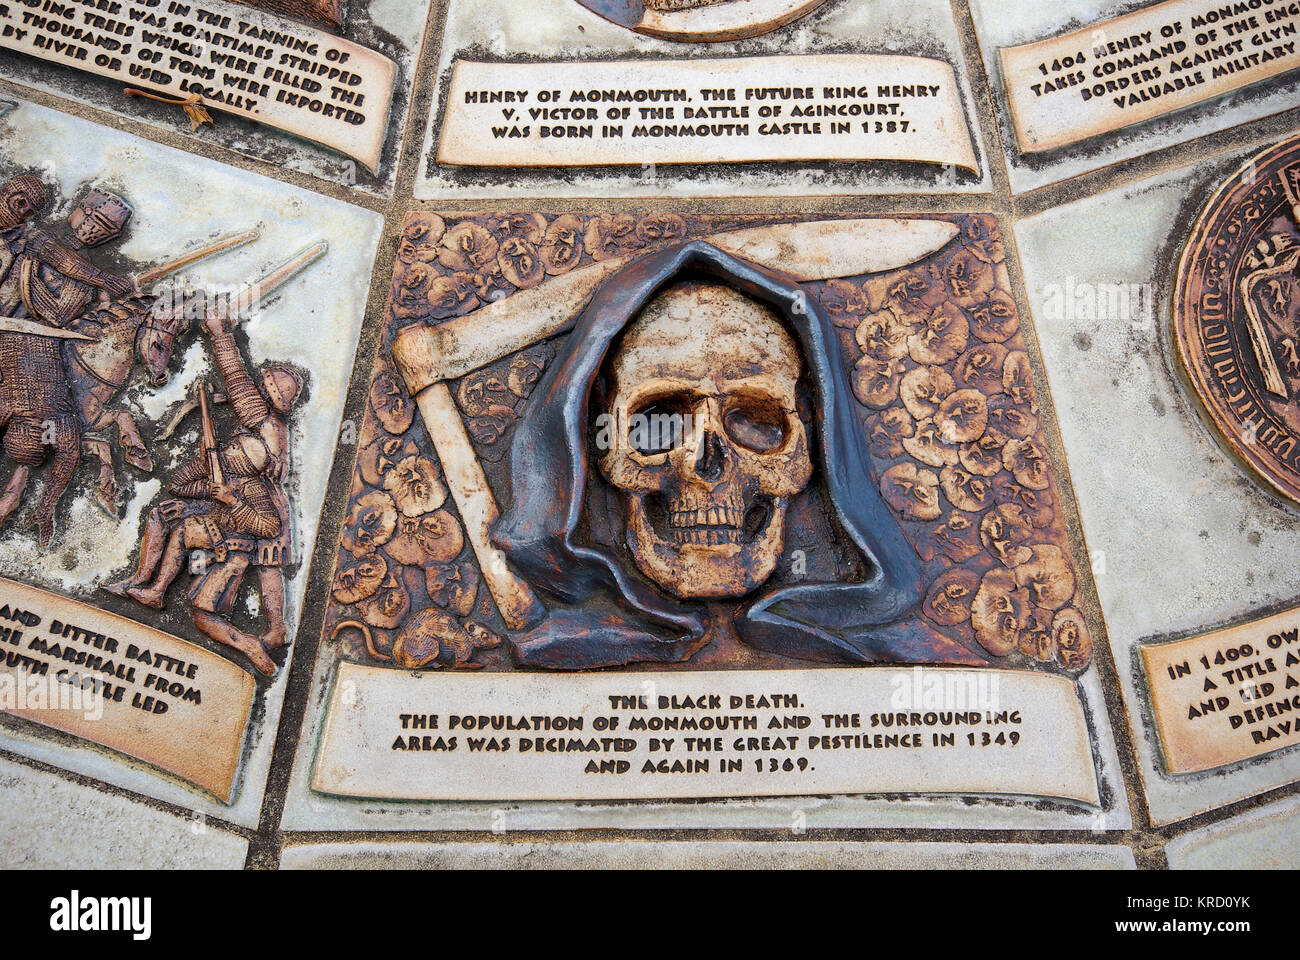 A Death's Head design on the Table Top Plaque, which depicts the history of Monmouth, Gwent, in several scenes. - Stock Image